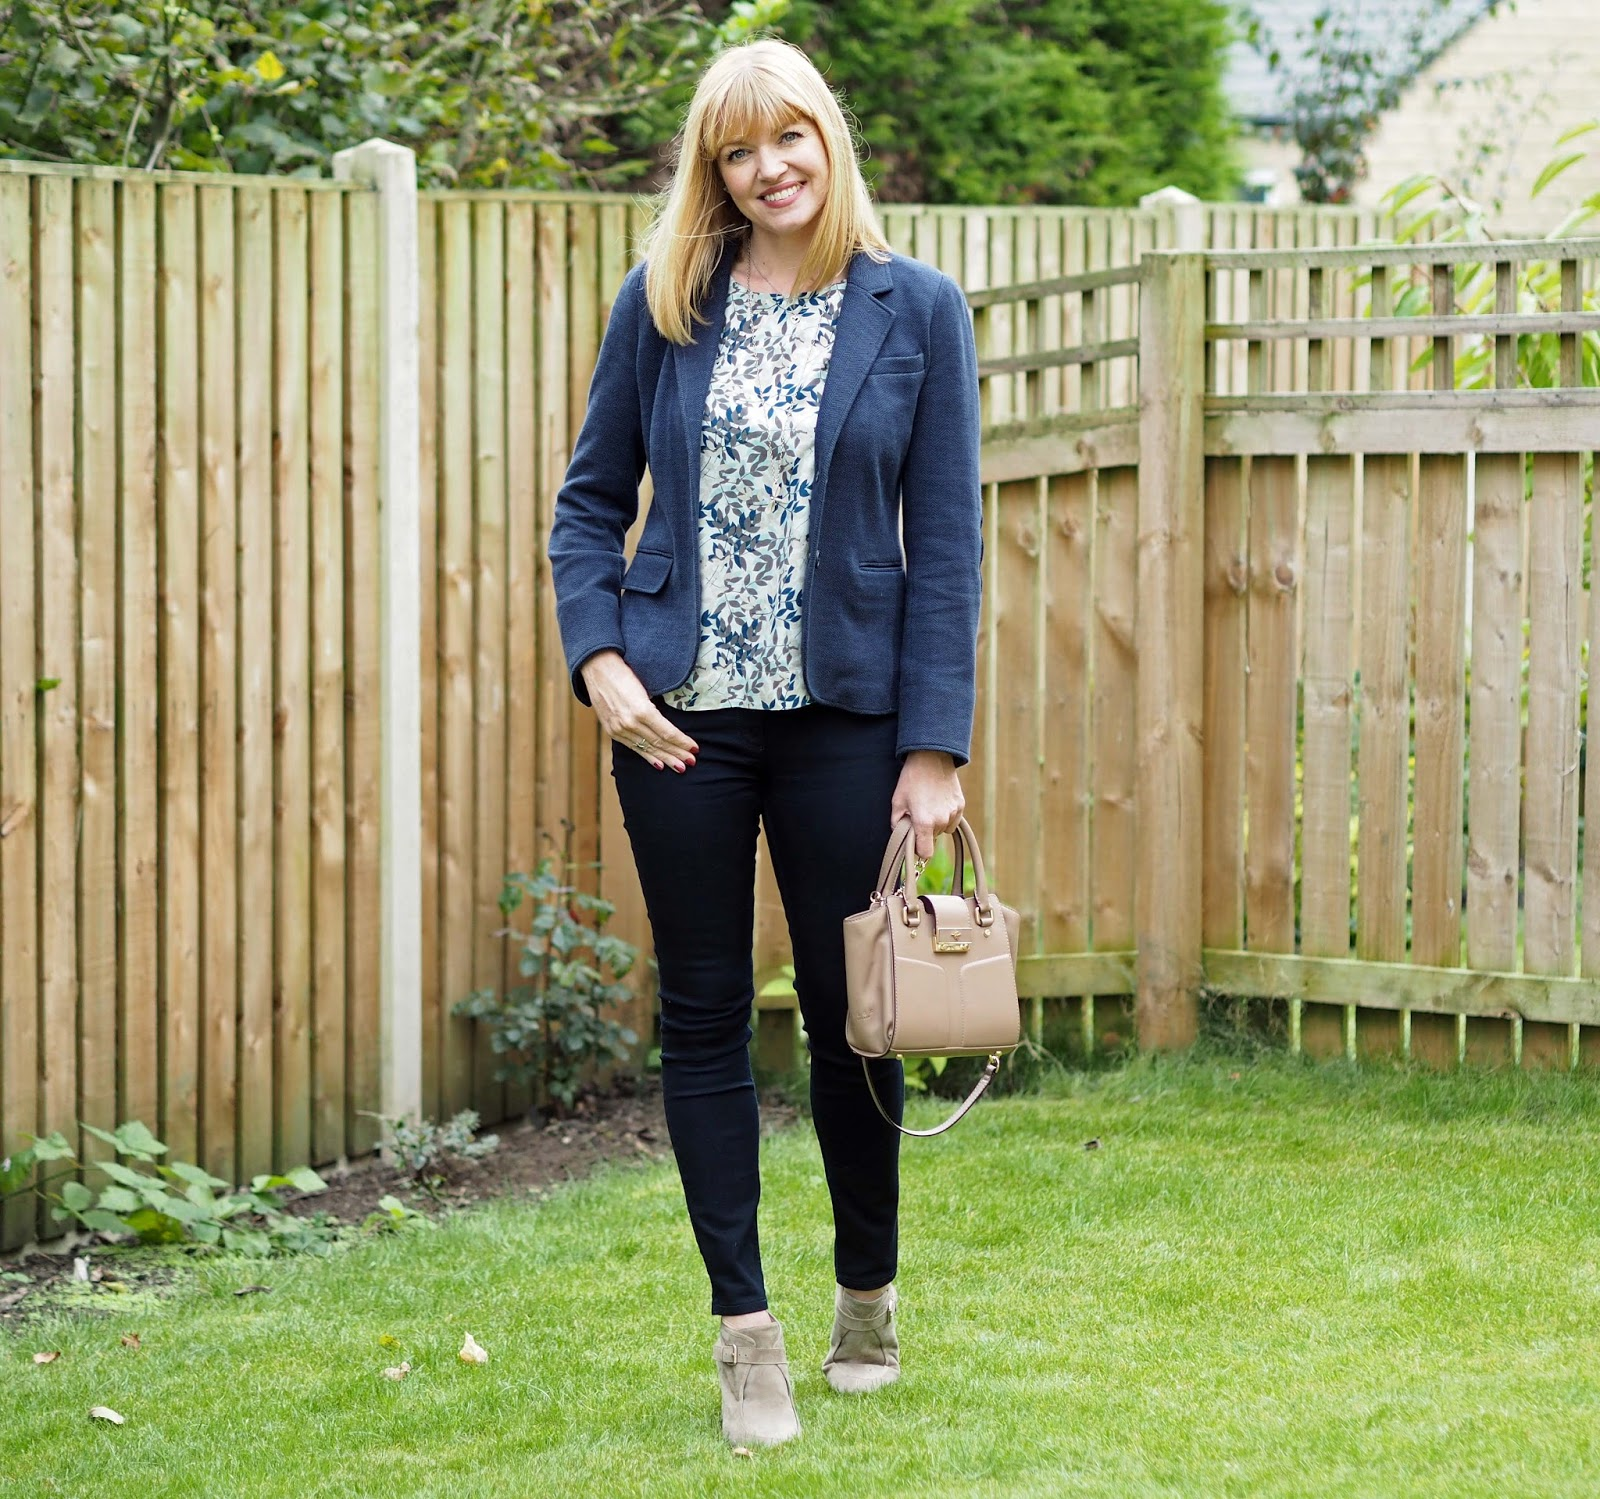 Tulchan leaf top, Joules jersey blazer and Ilex Alexa bag